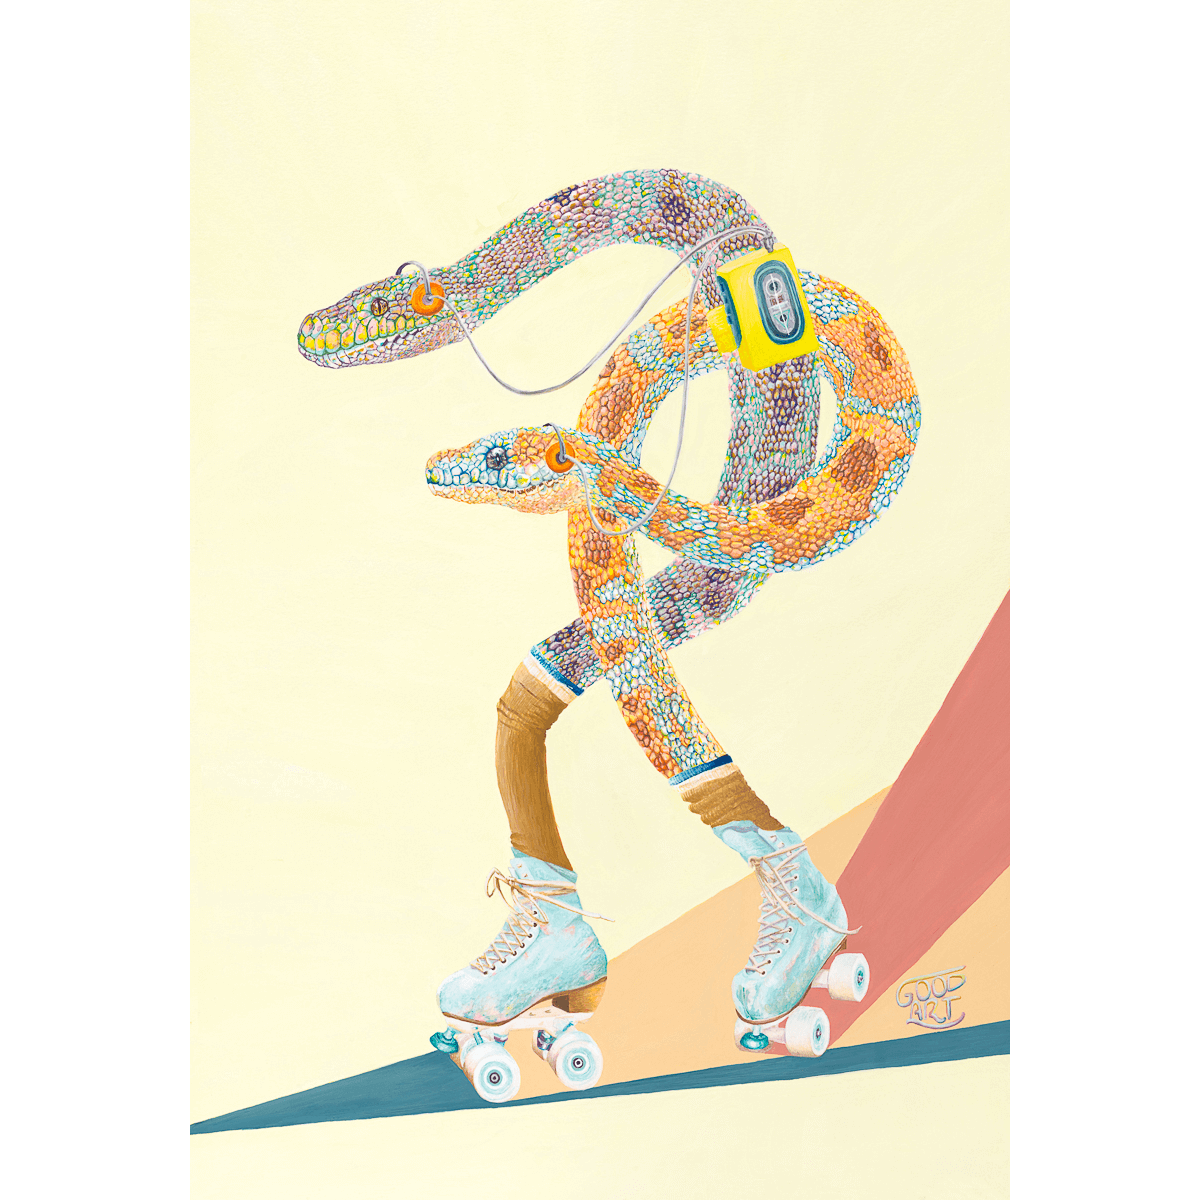 An artwork of Western Australian Carpet Pythons roller skating, whilst listening to a walkman. In a retro styled Art print. Mellow yellow background.